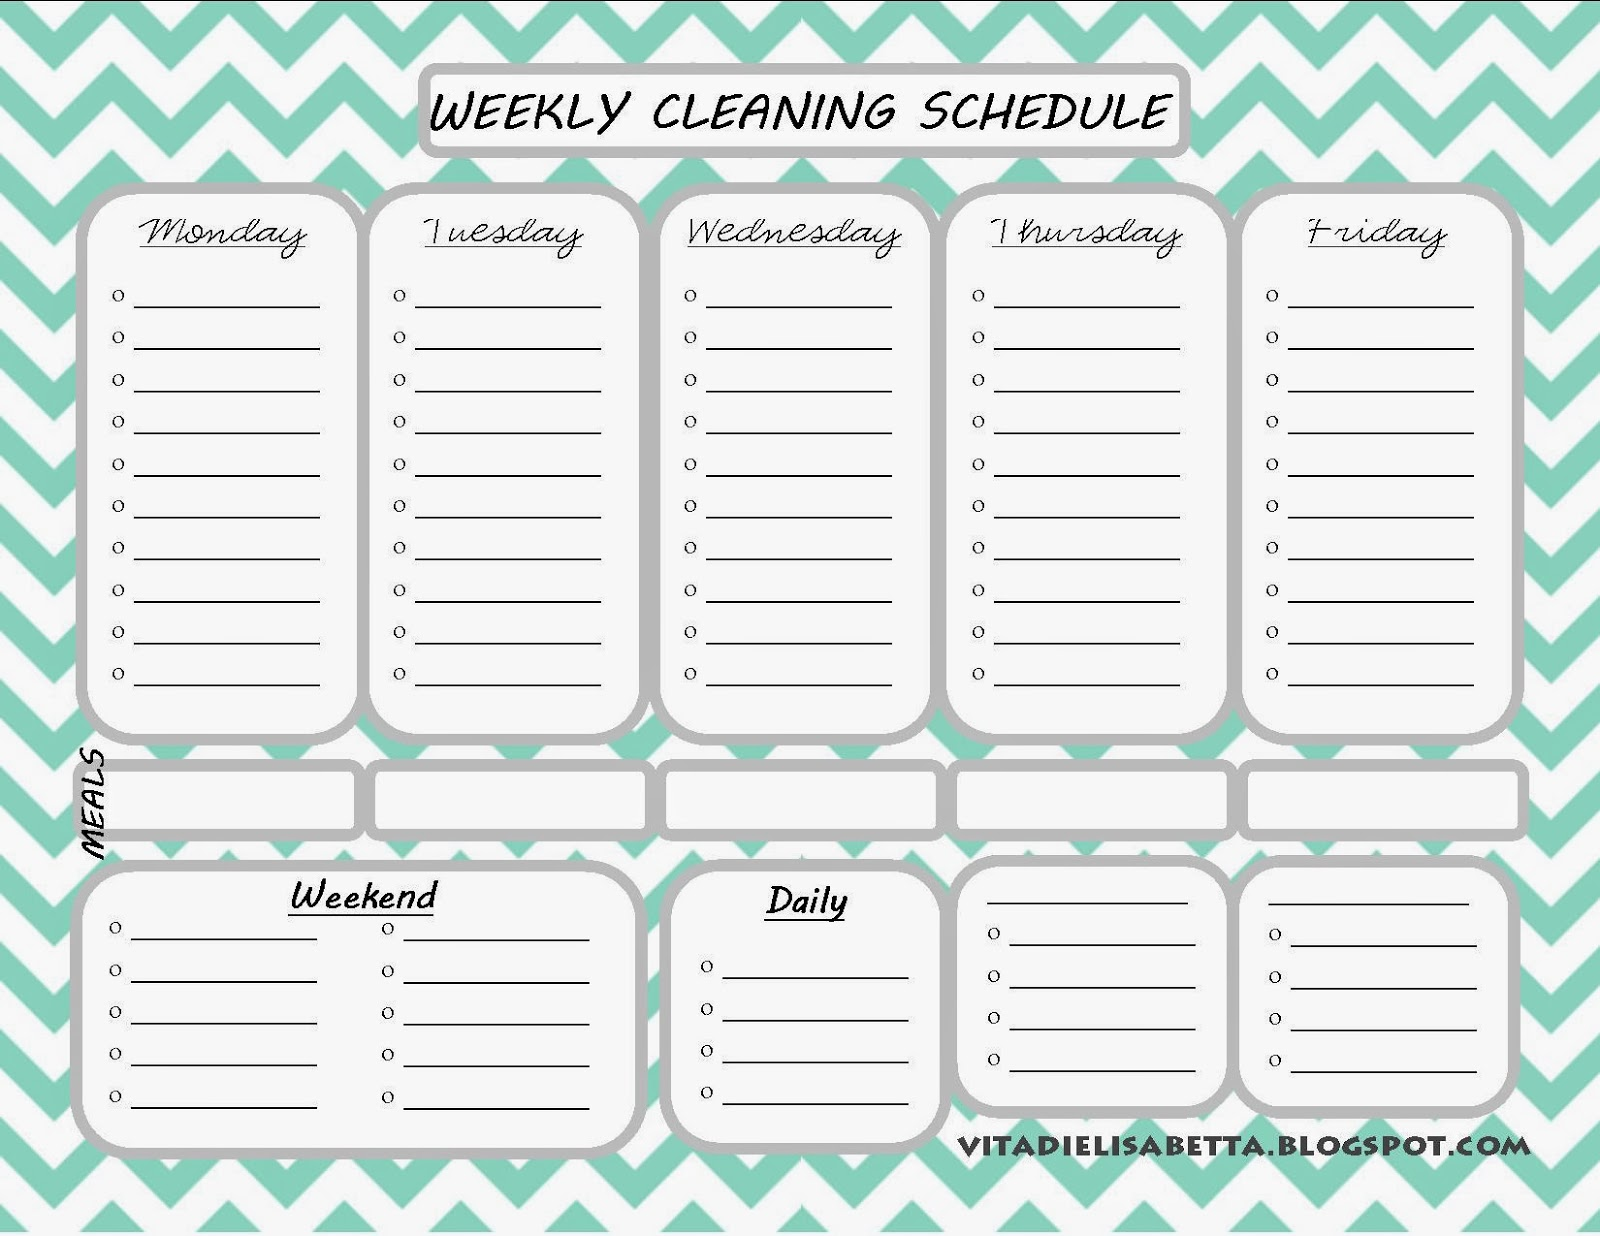 Blank Weekly Cleaning Schedule Seroton Ponderresearch Co